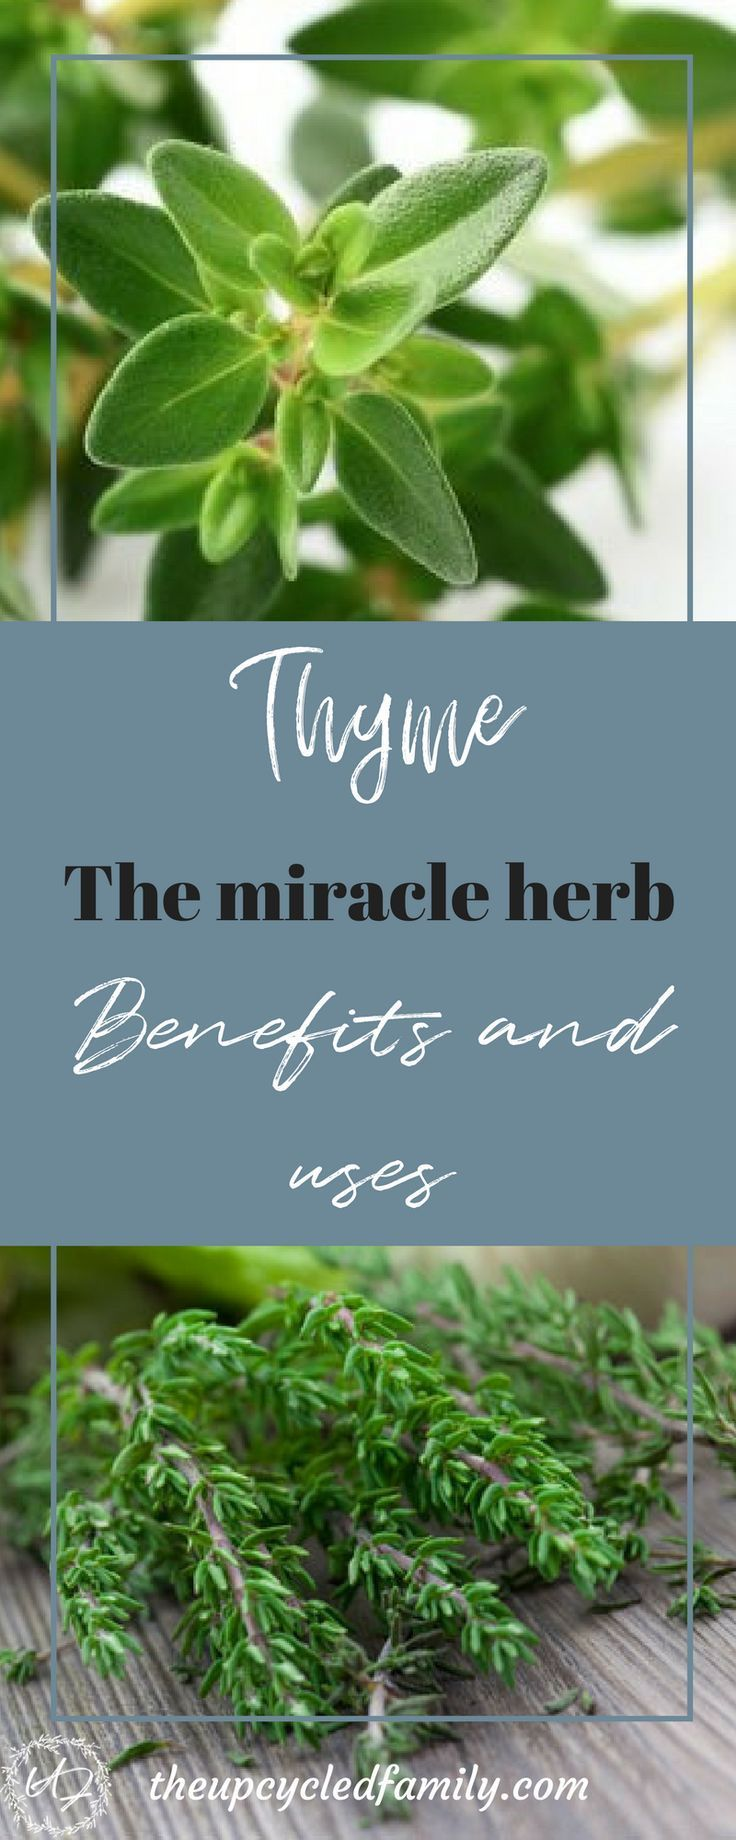 Thyme benefits and uses | Pinterest | Medicine cabinets, Athlete and ...